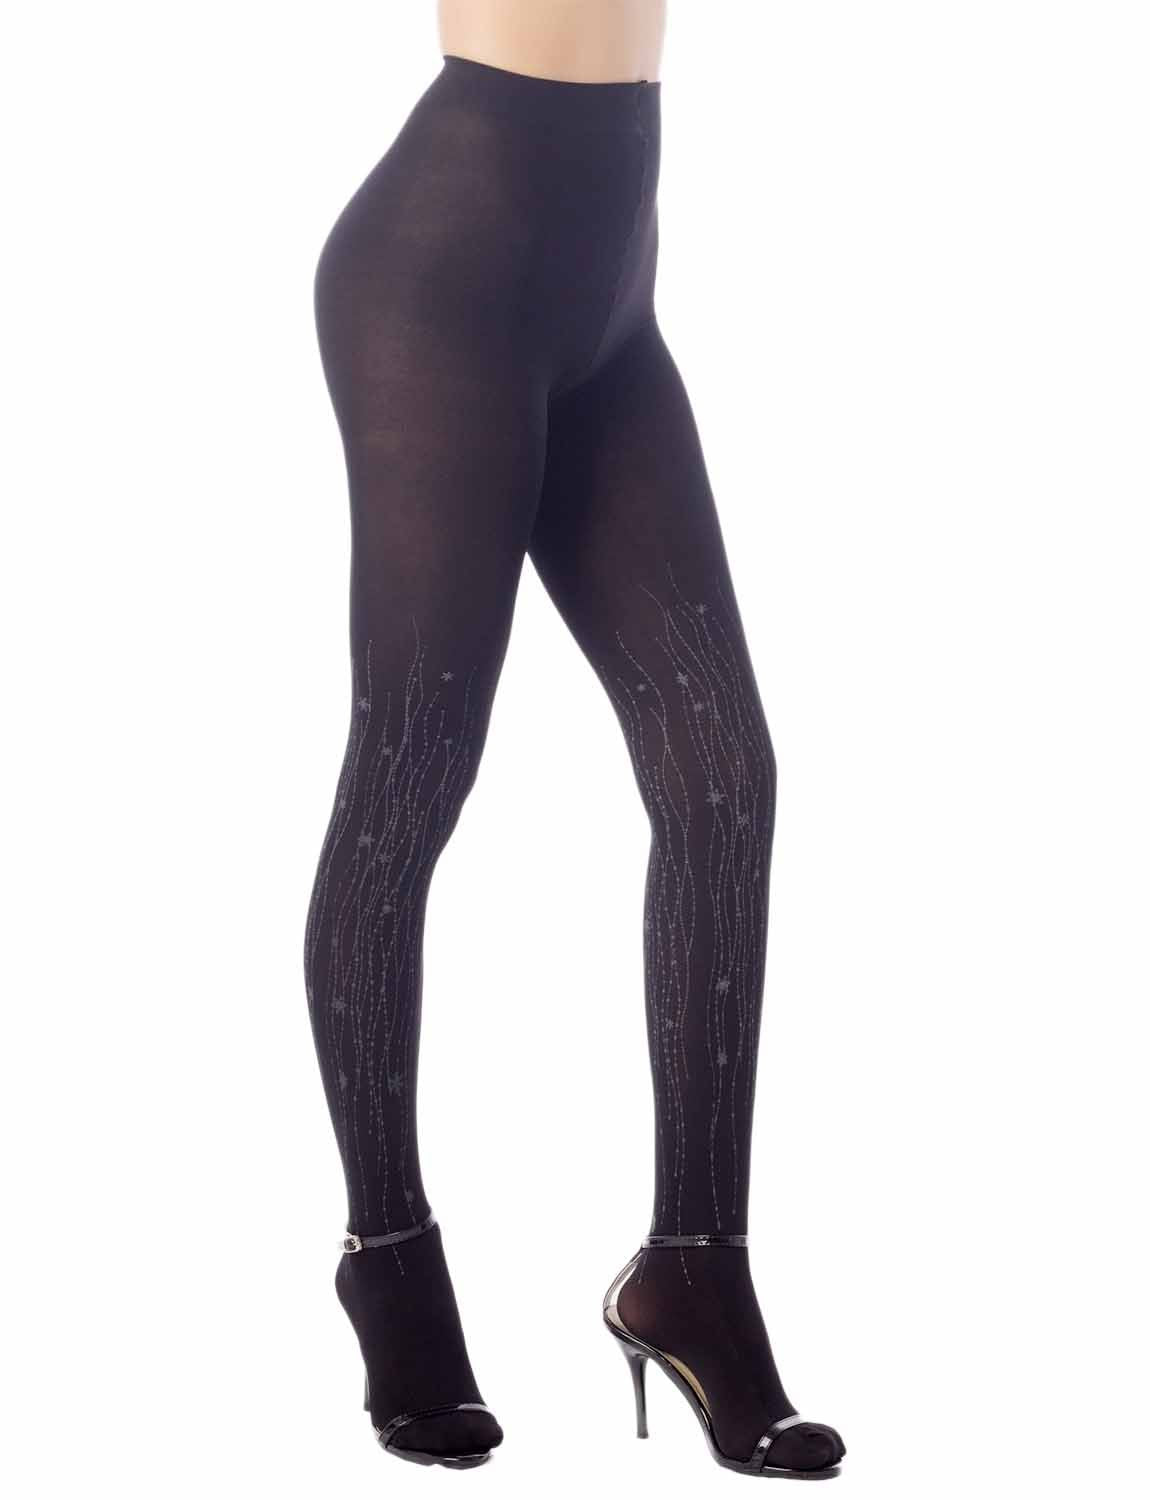 Women's Hosiery Art Patterned Seamless 5 DEN Ultra Sheer Pantyhose Tights, Size: M-L, Black